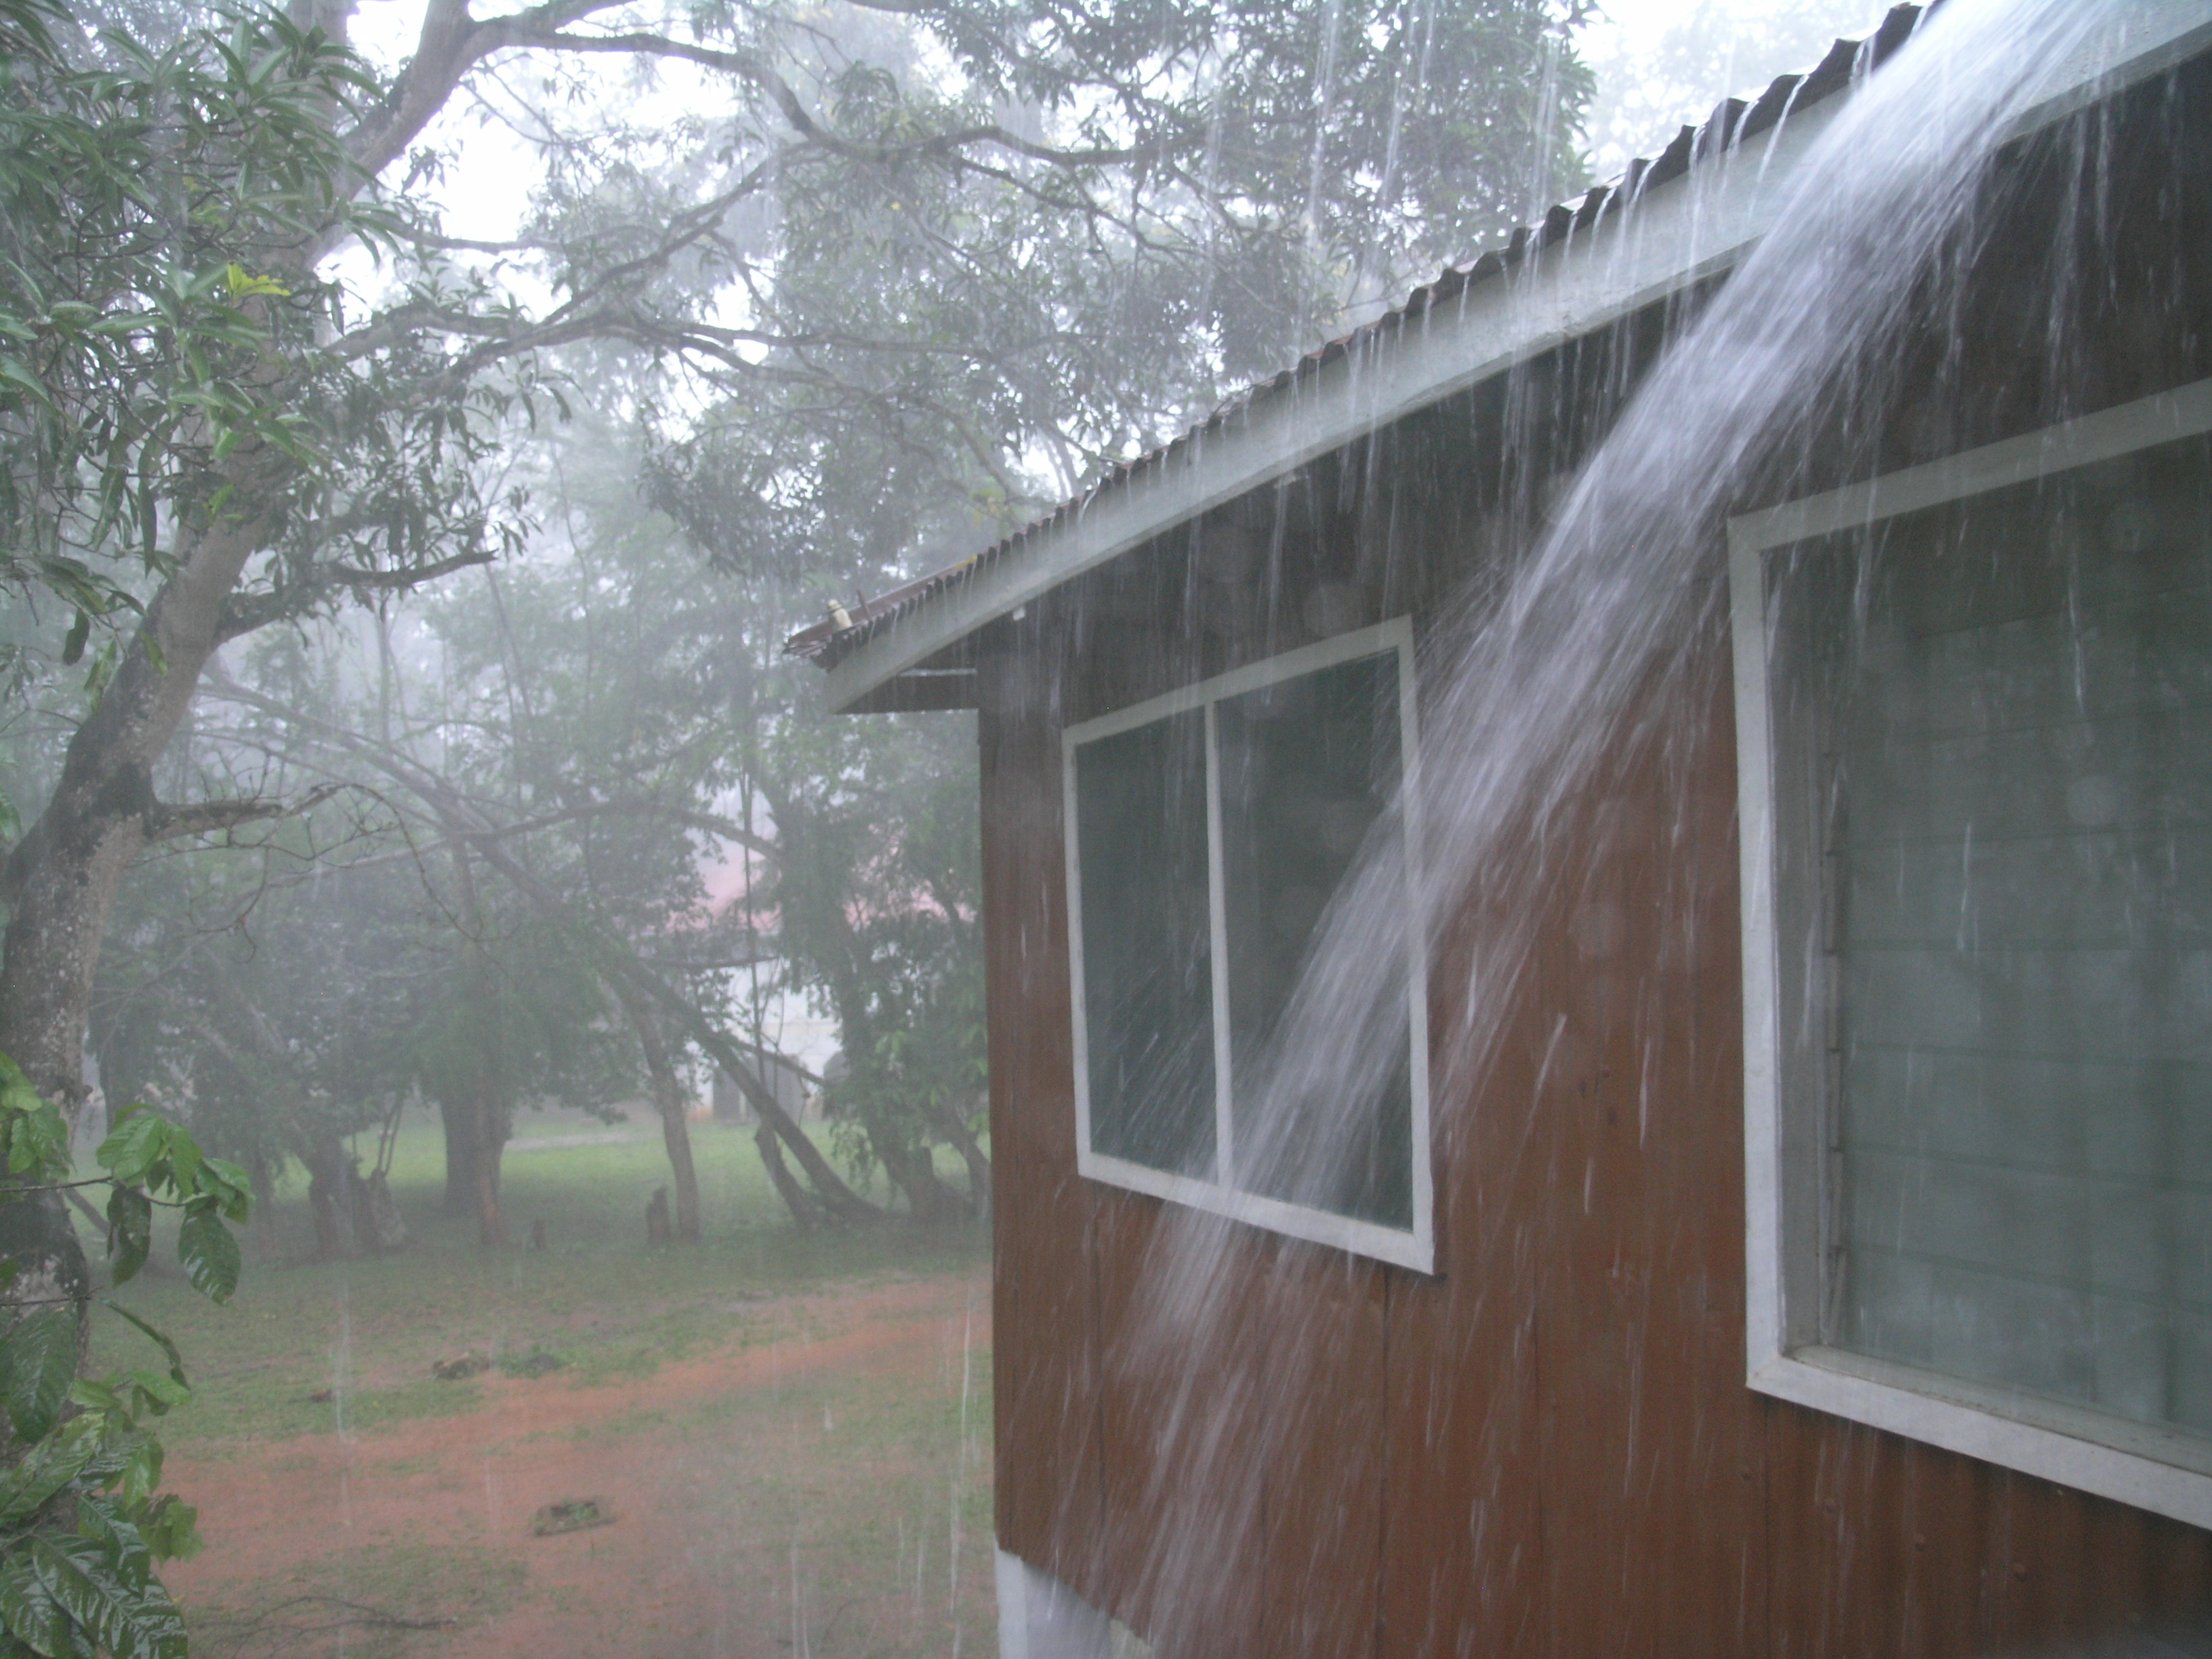 And the rains will come six degrees north - Rain gutter downspout diffuser ...